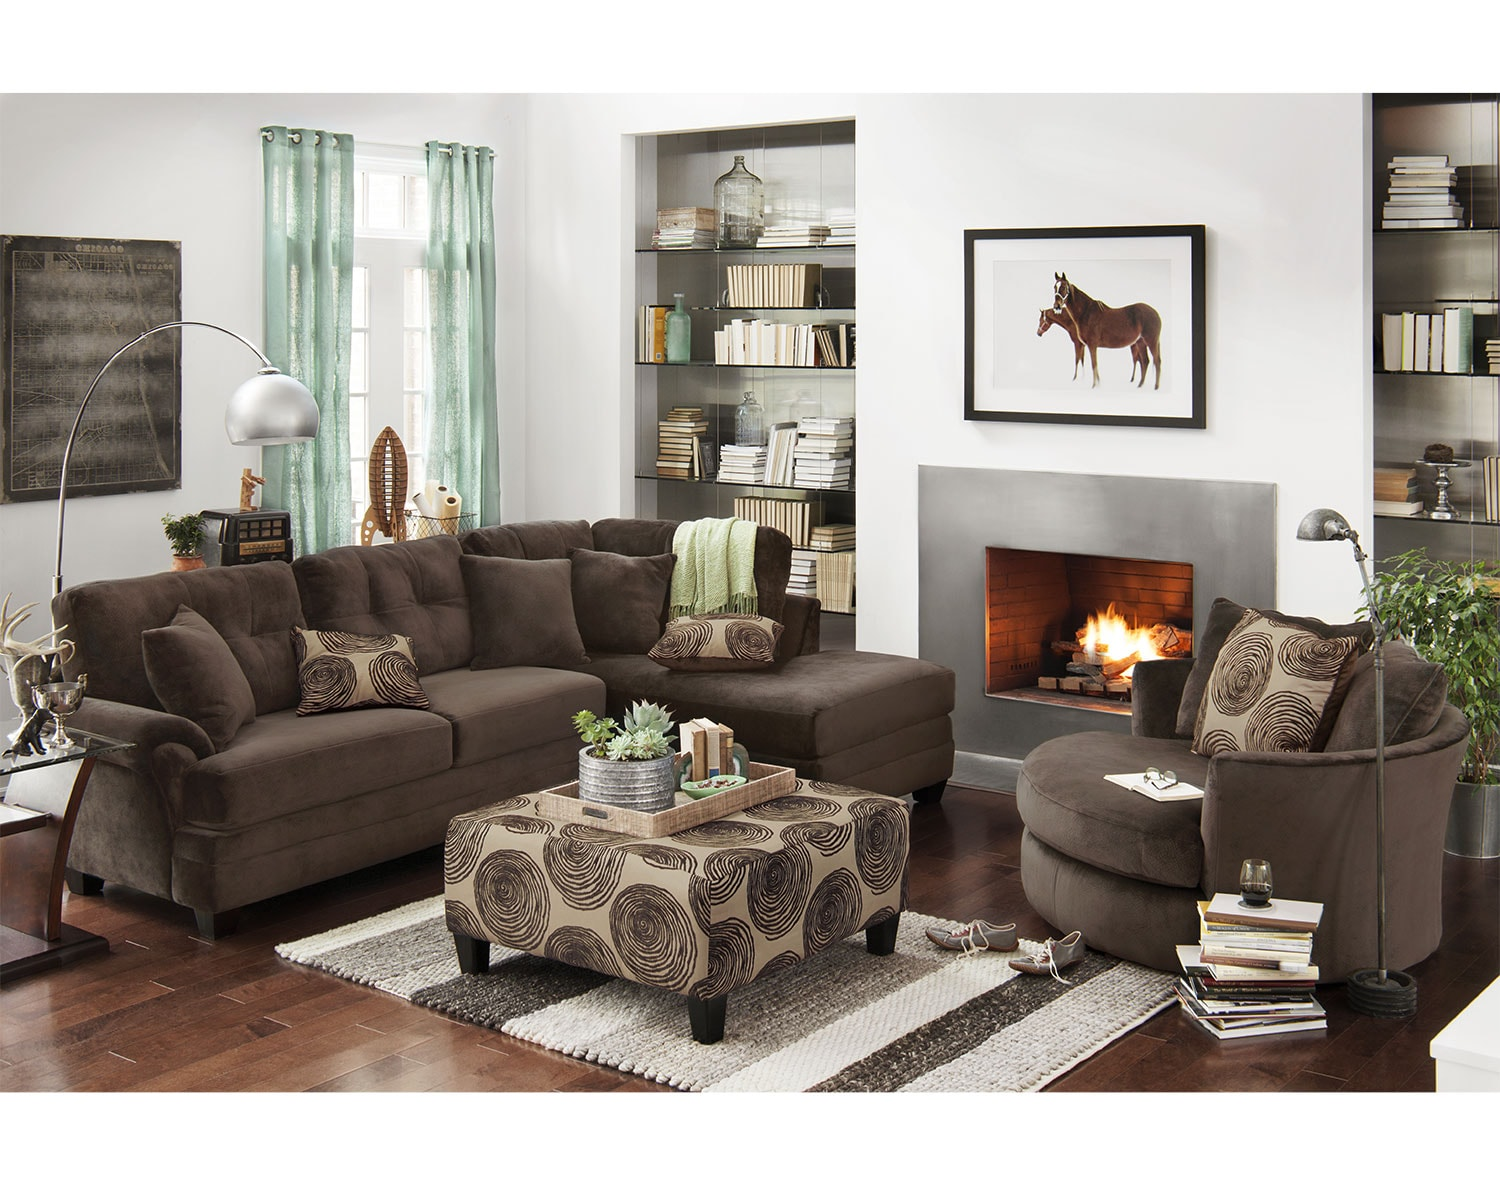 sectionals plans sofa great with furniture value ideas and sectional espan city design leather of on home best